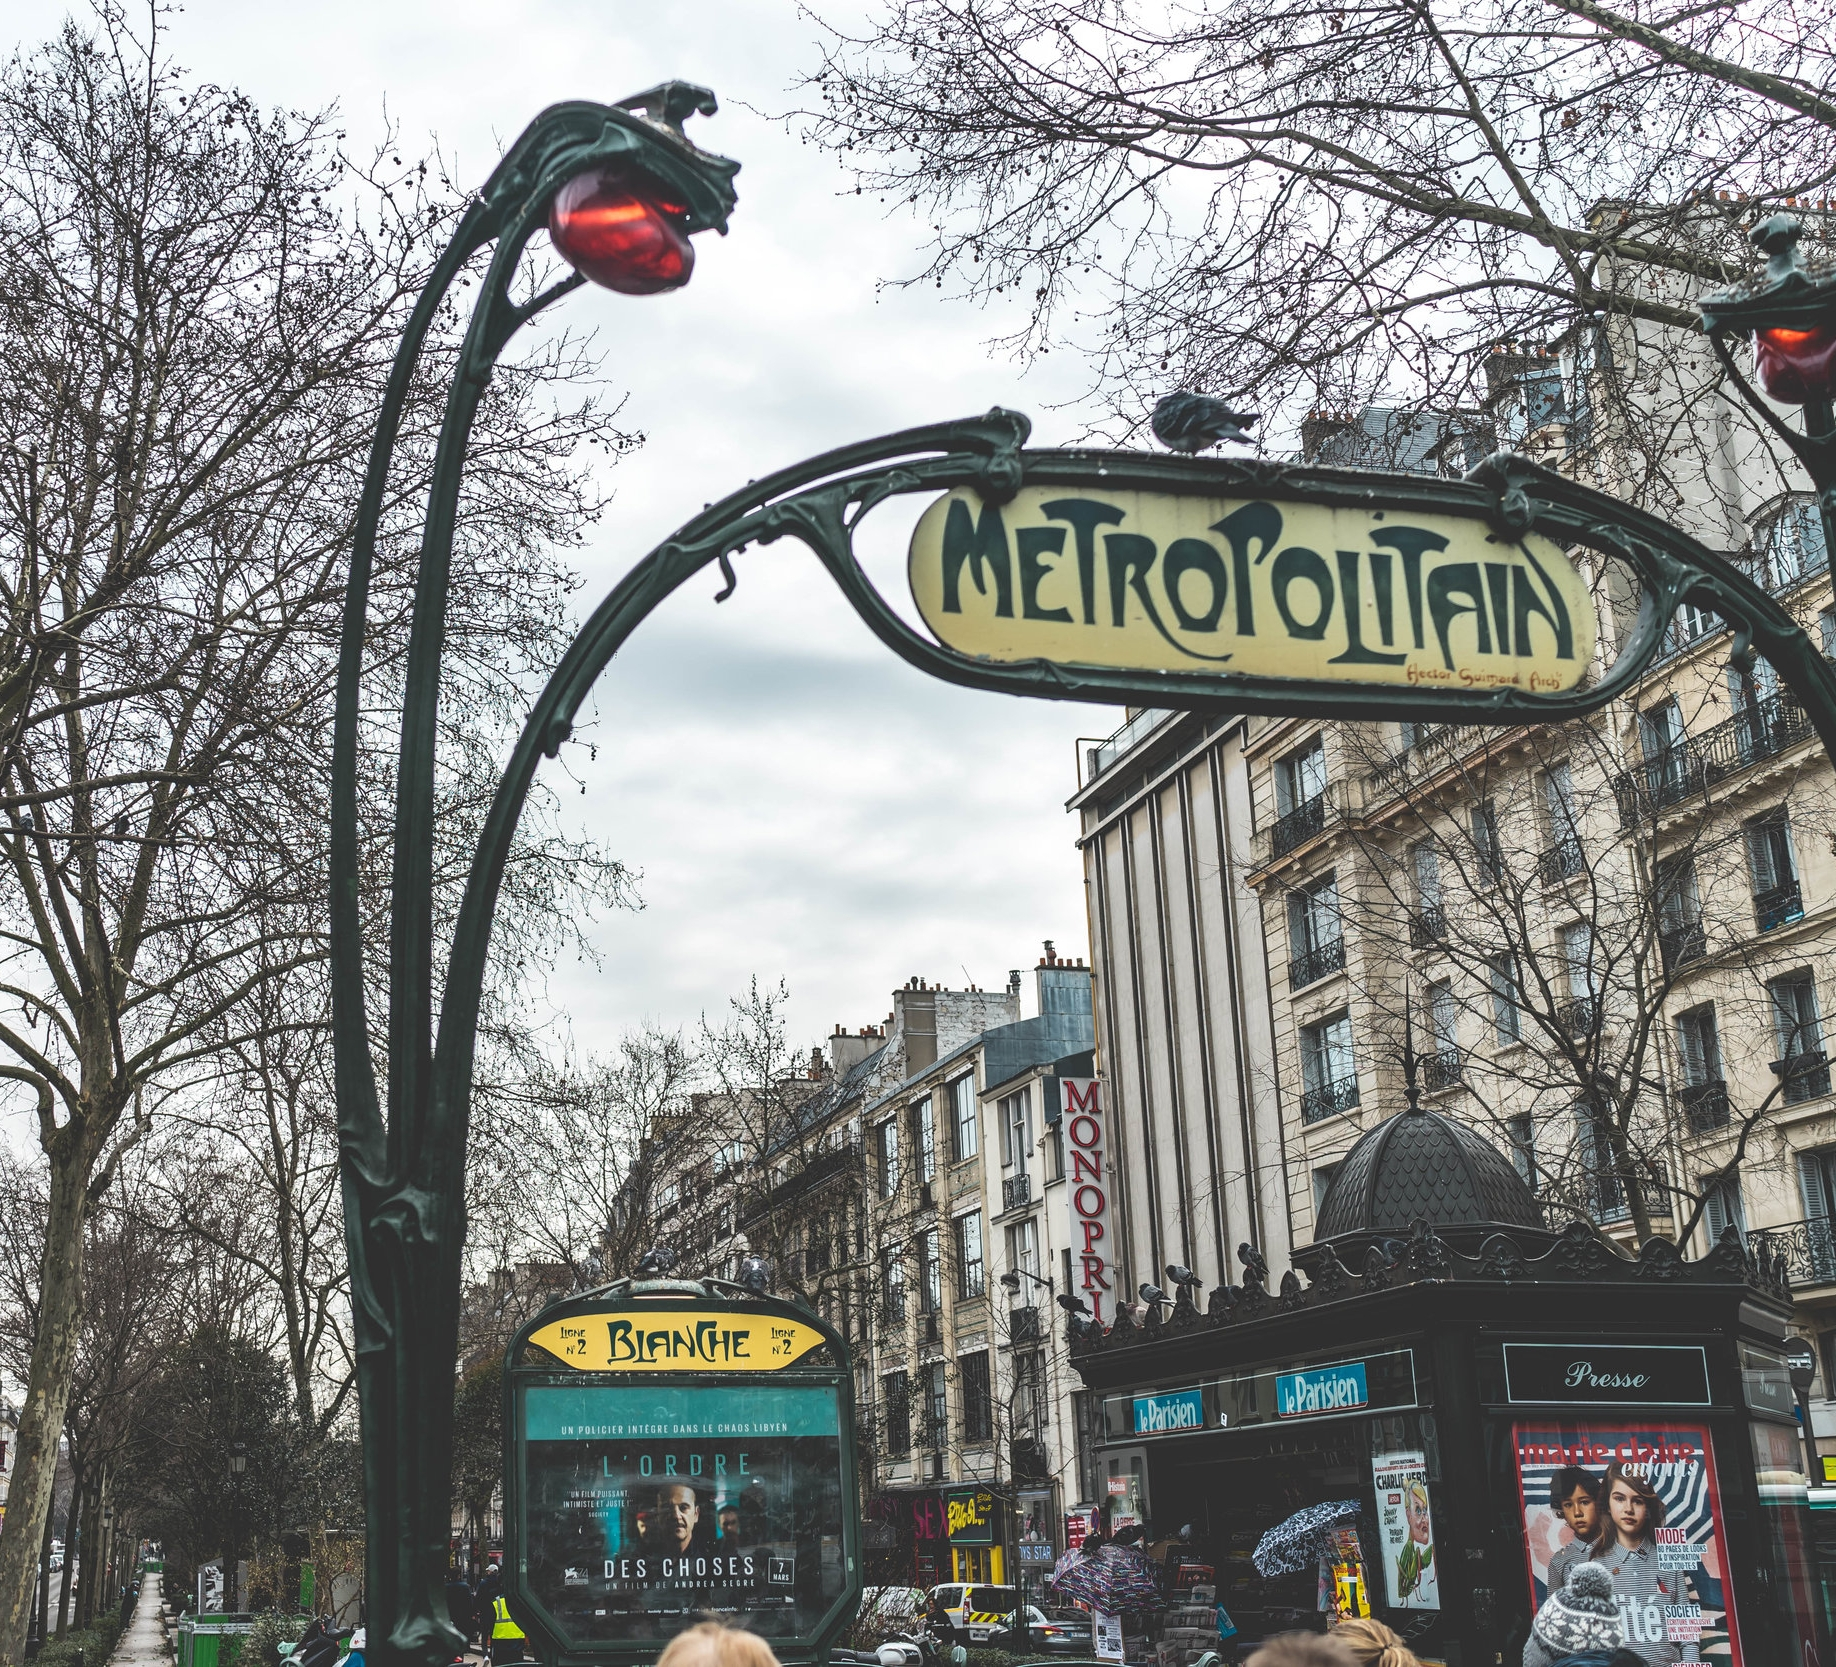 moulin-rouge-what-to-do-in-montmartre-18th-arrondissement-paris